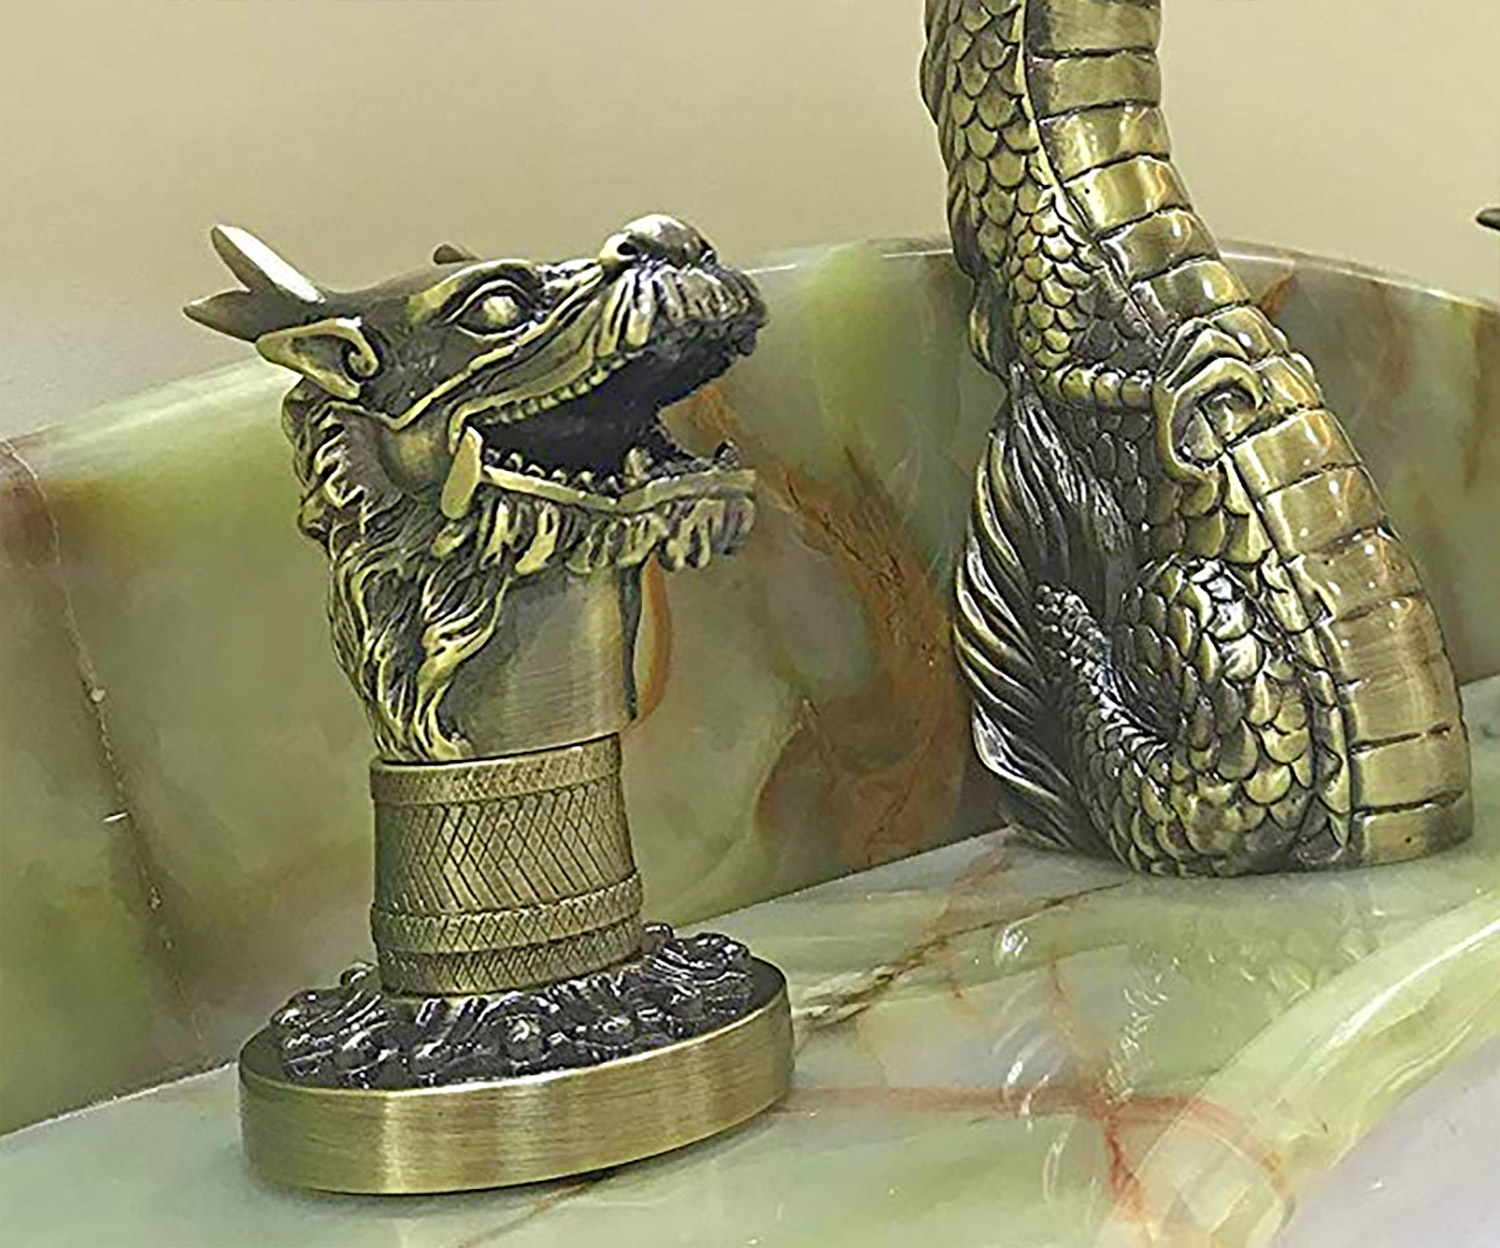 Dragon Faucet - Luxurious Dragon Bathroom Fixture